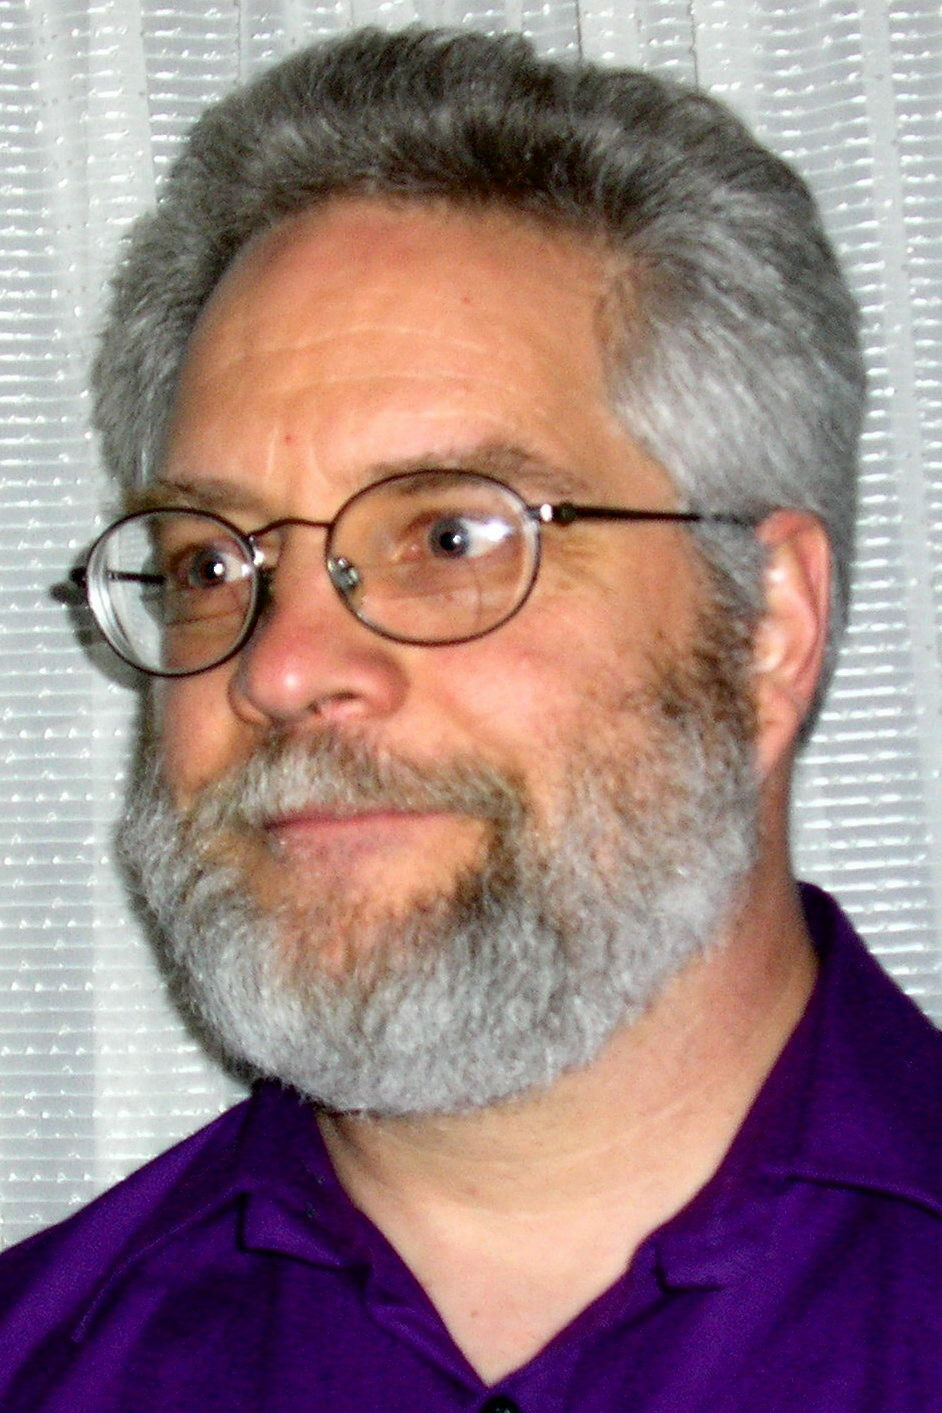 A headshot of a bespectacled man with gray hair and a gray beard.